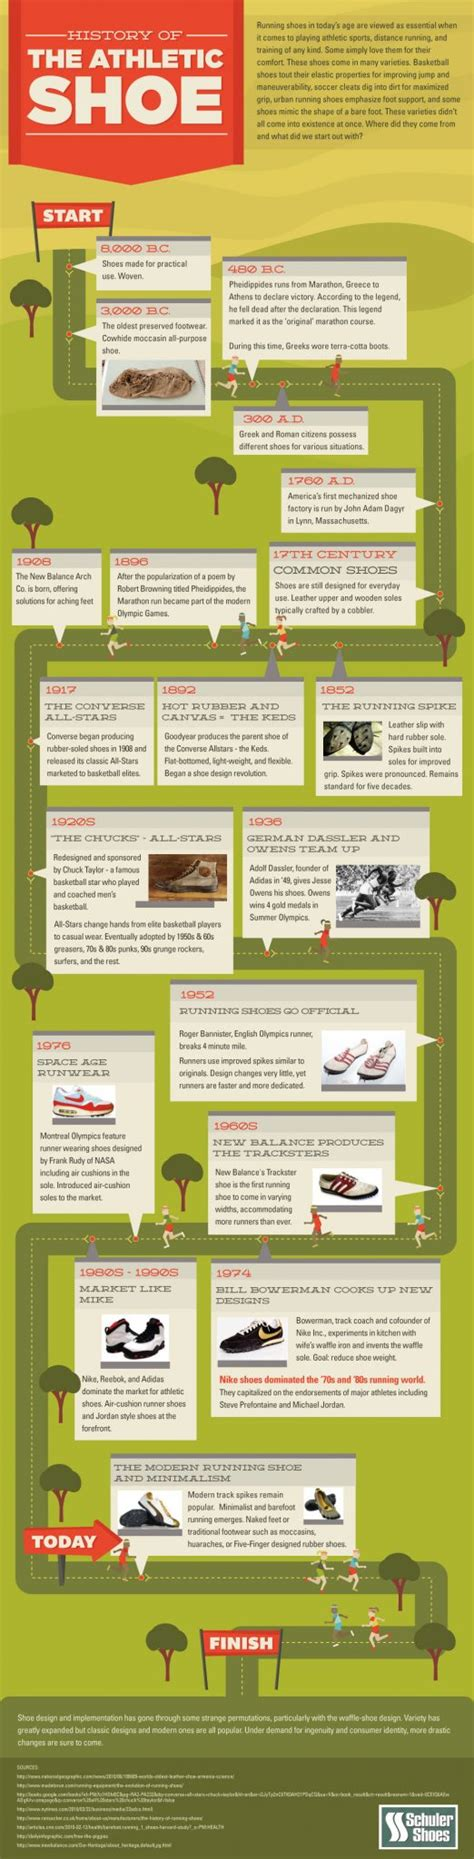 history of athletic shoes the history of athletic shoes infographic schuler shoes